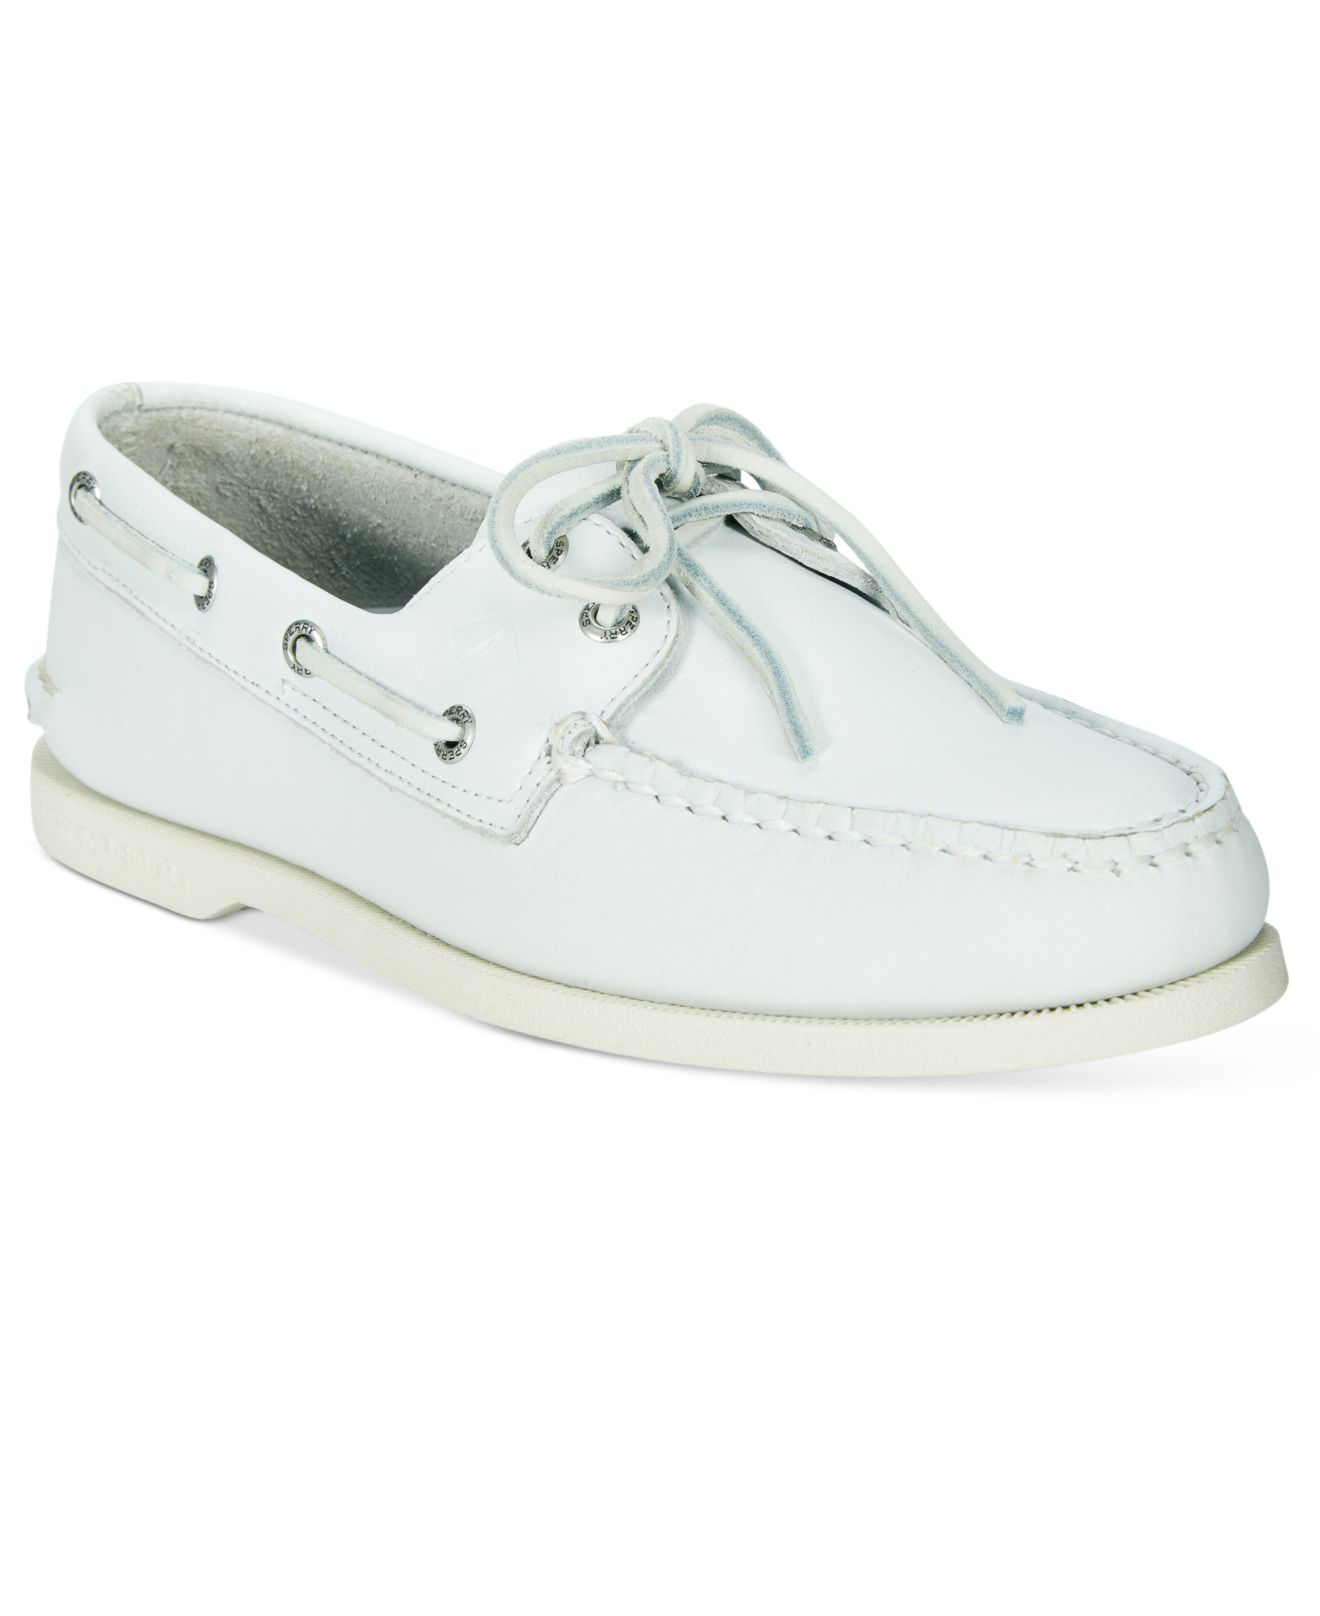 Where To Buy Mens Sperry Boat Shoes